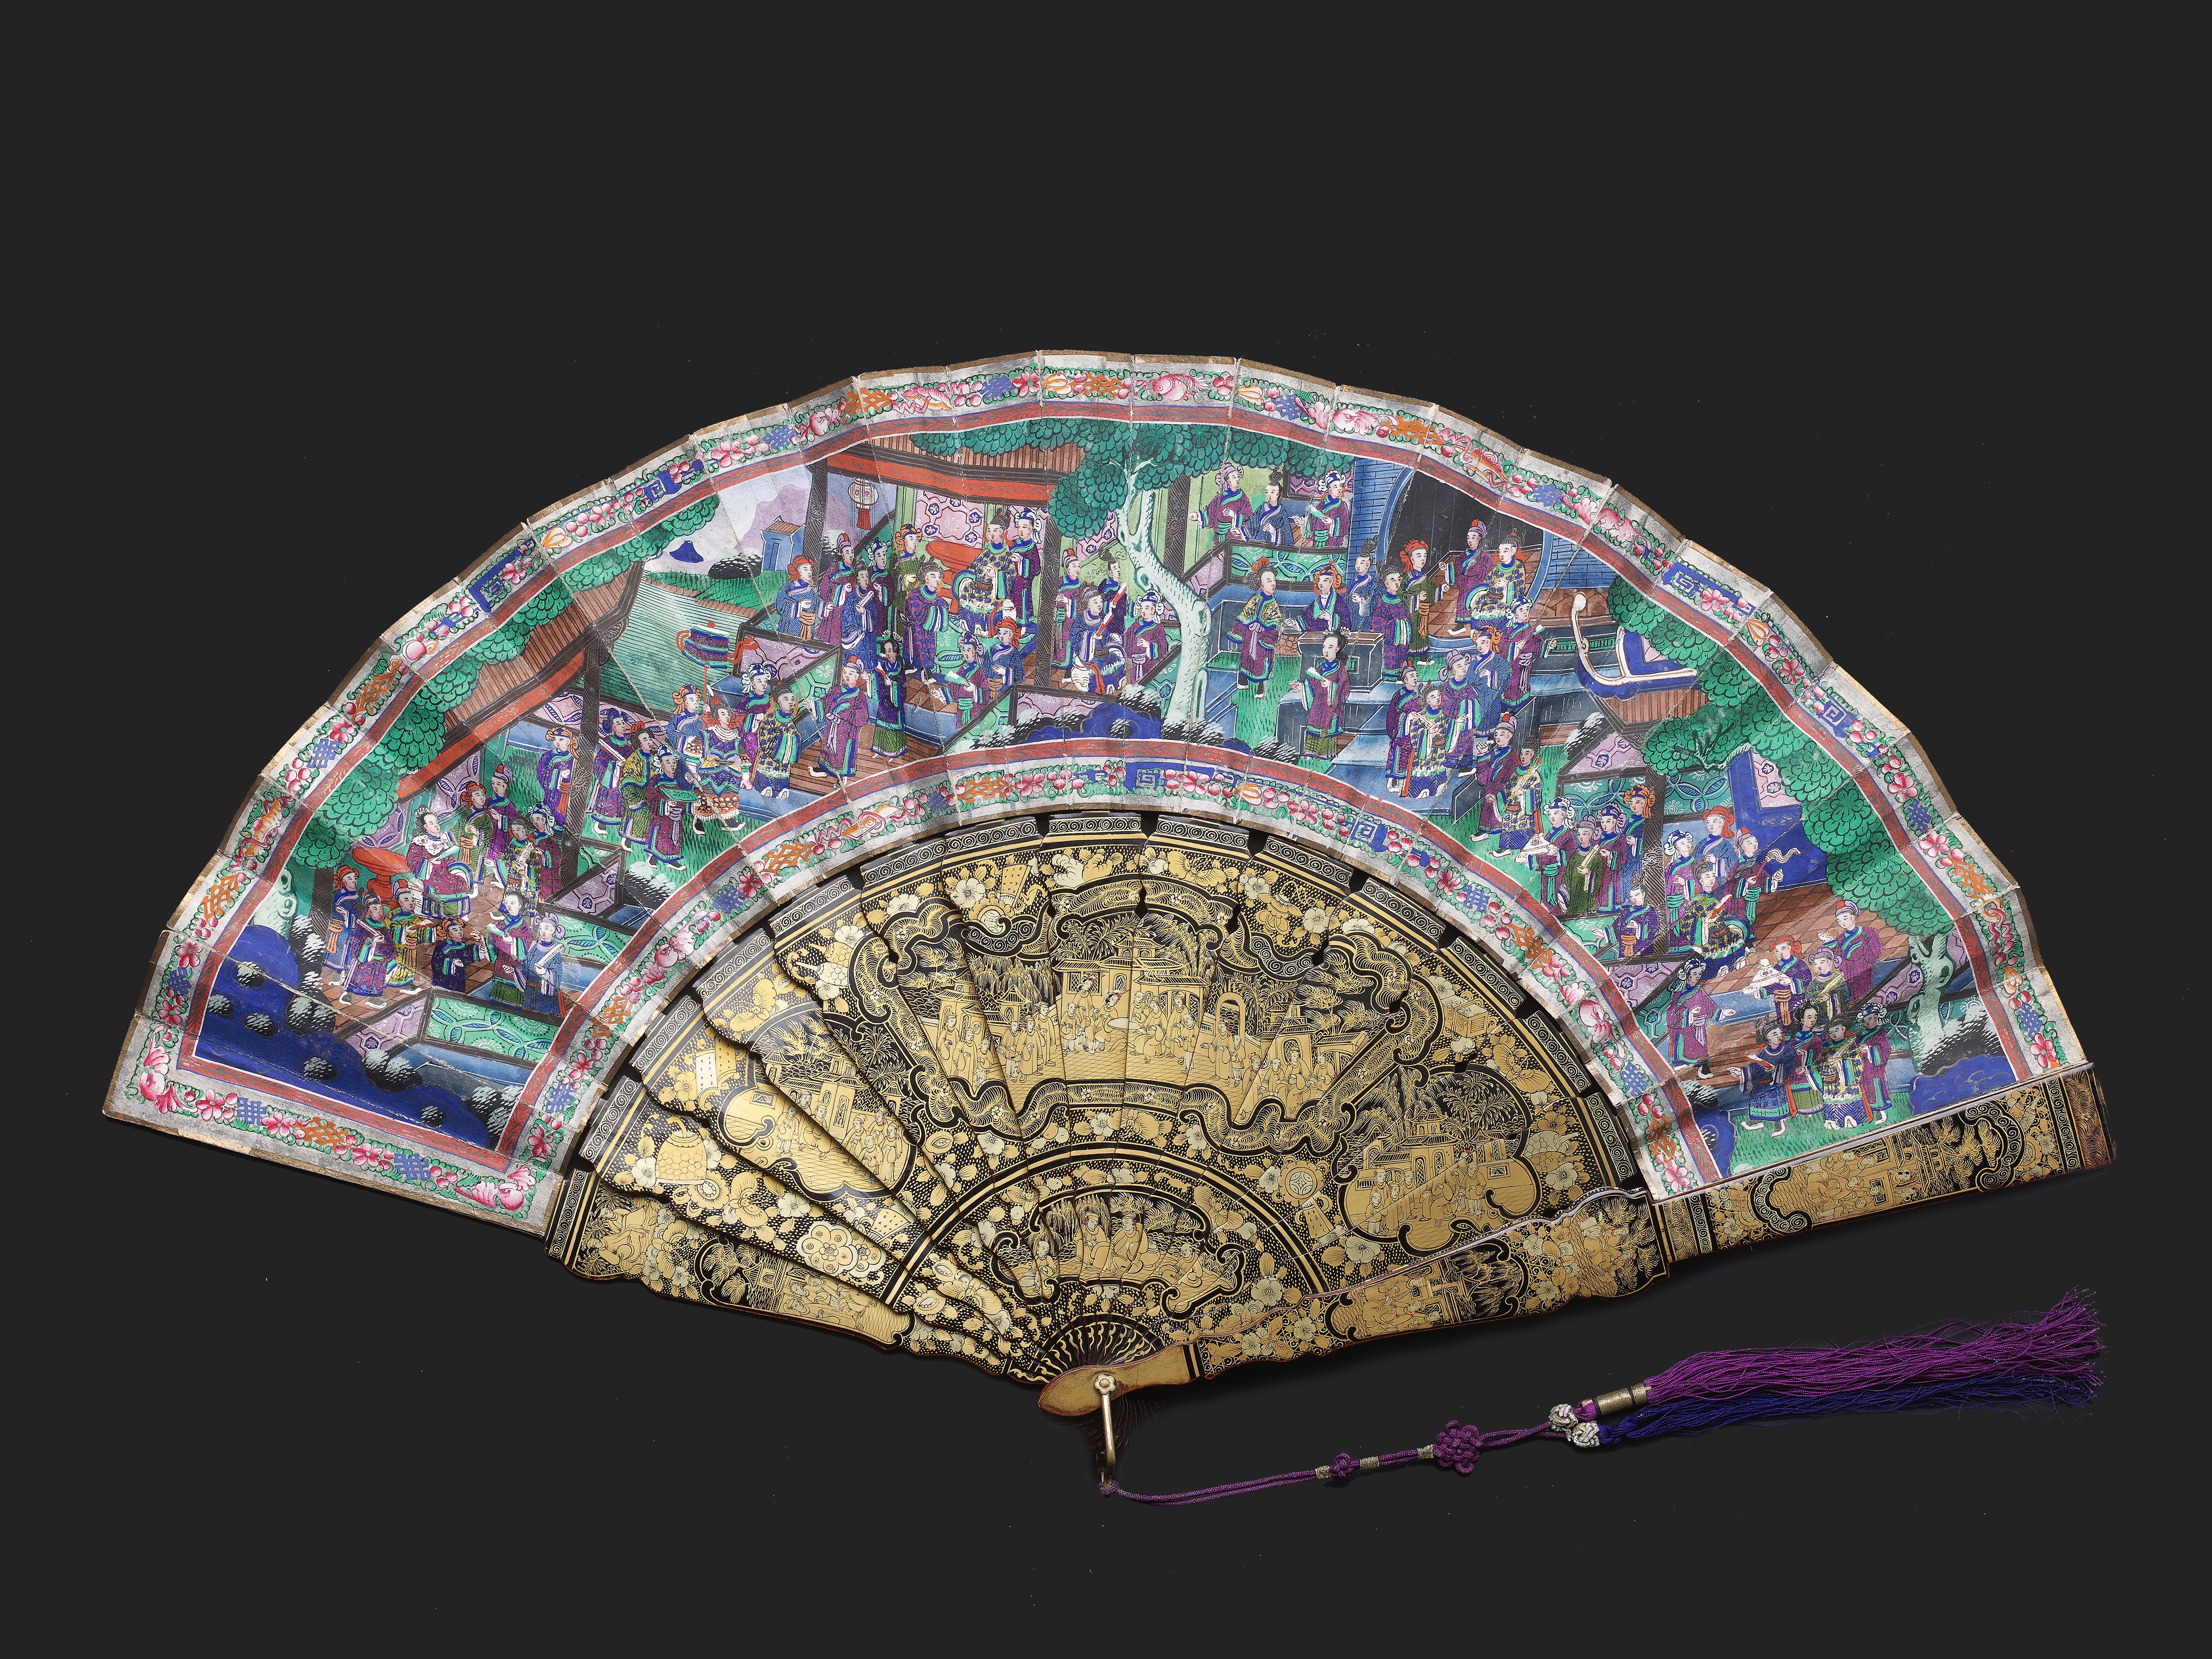 Lot 4 - A CHINESE EXPORT MACAU LANDSCAPE FAN, QING DYNASTY, DAOGUANG PERIOD, CIRCA 1840